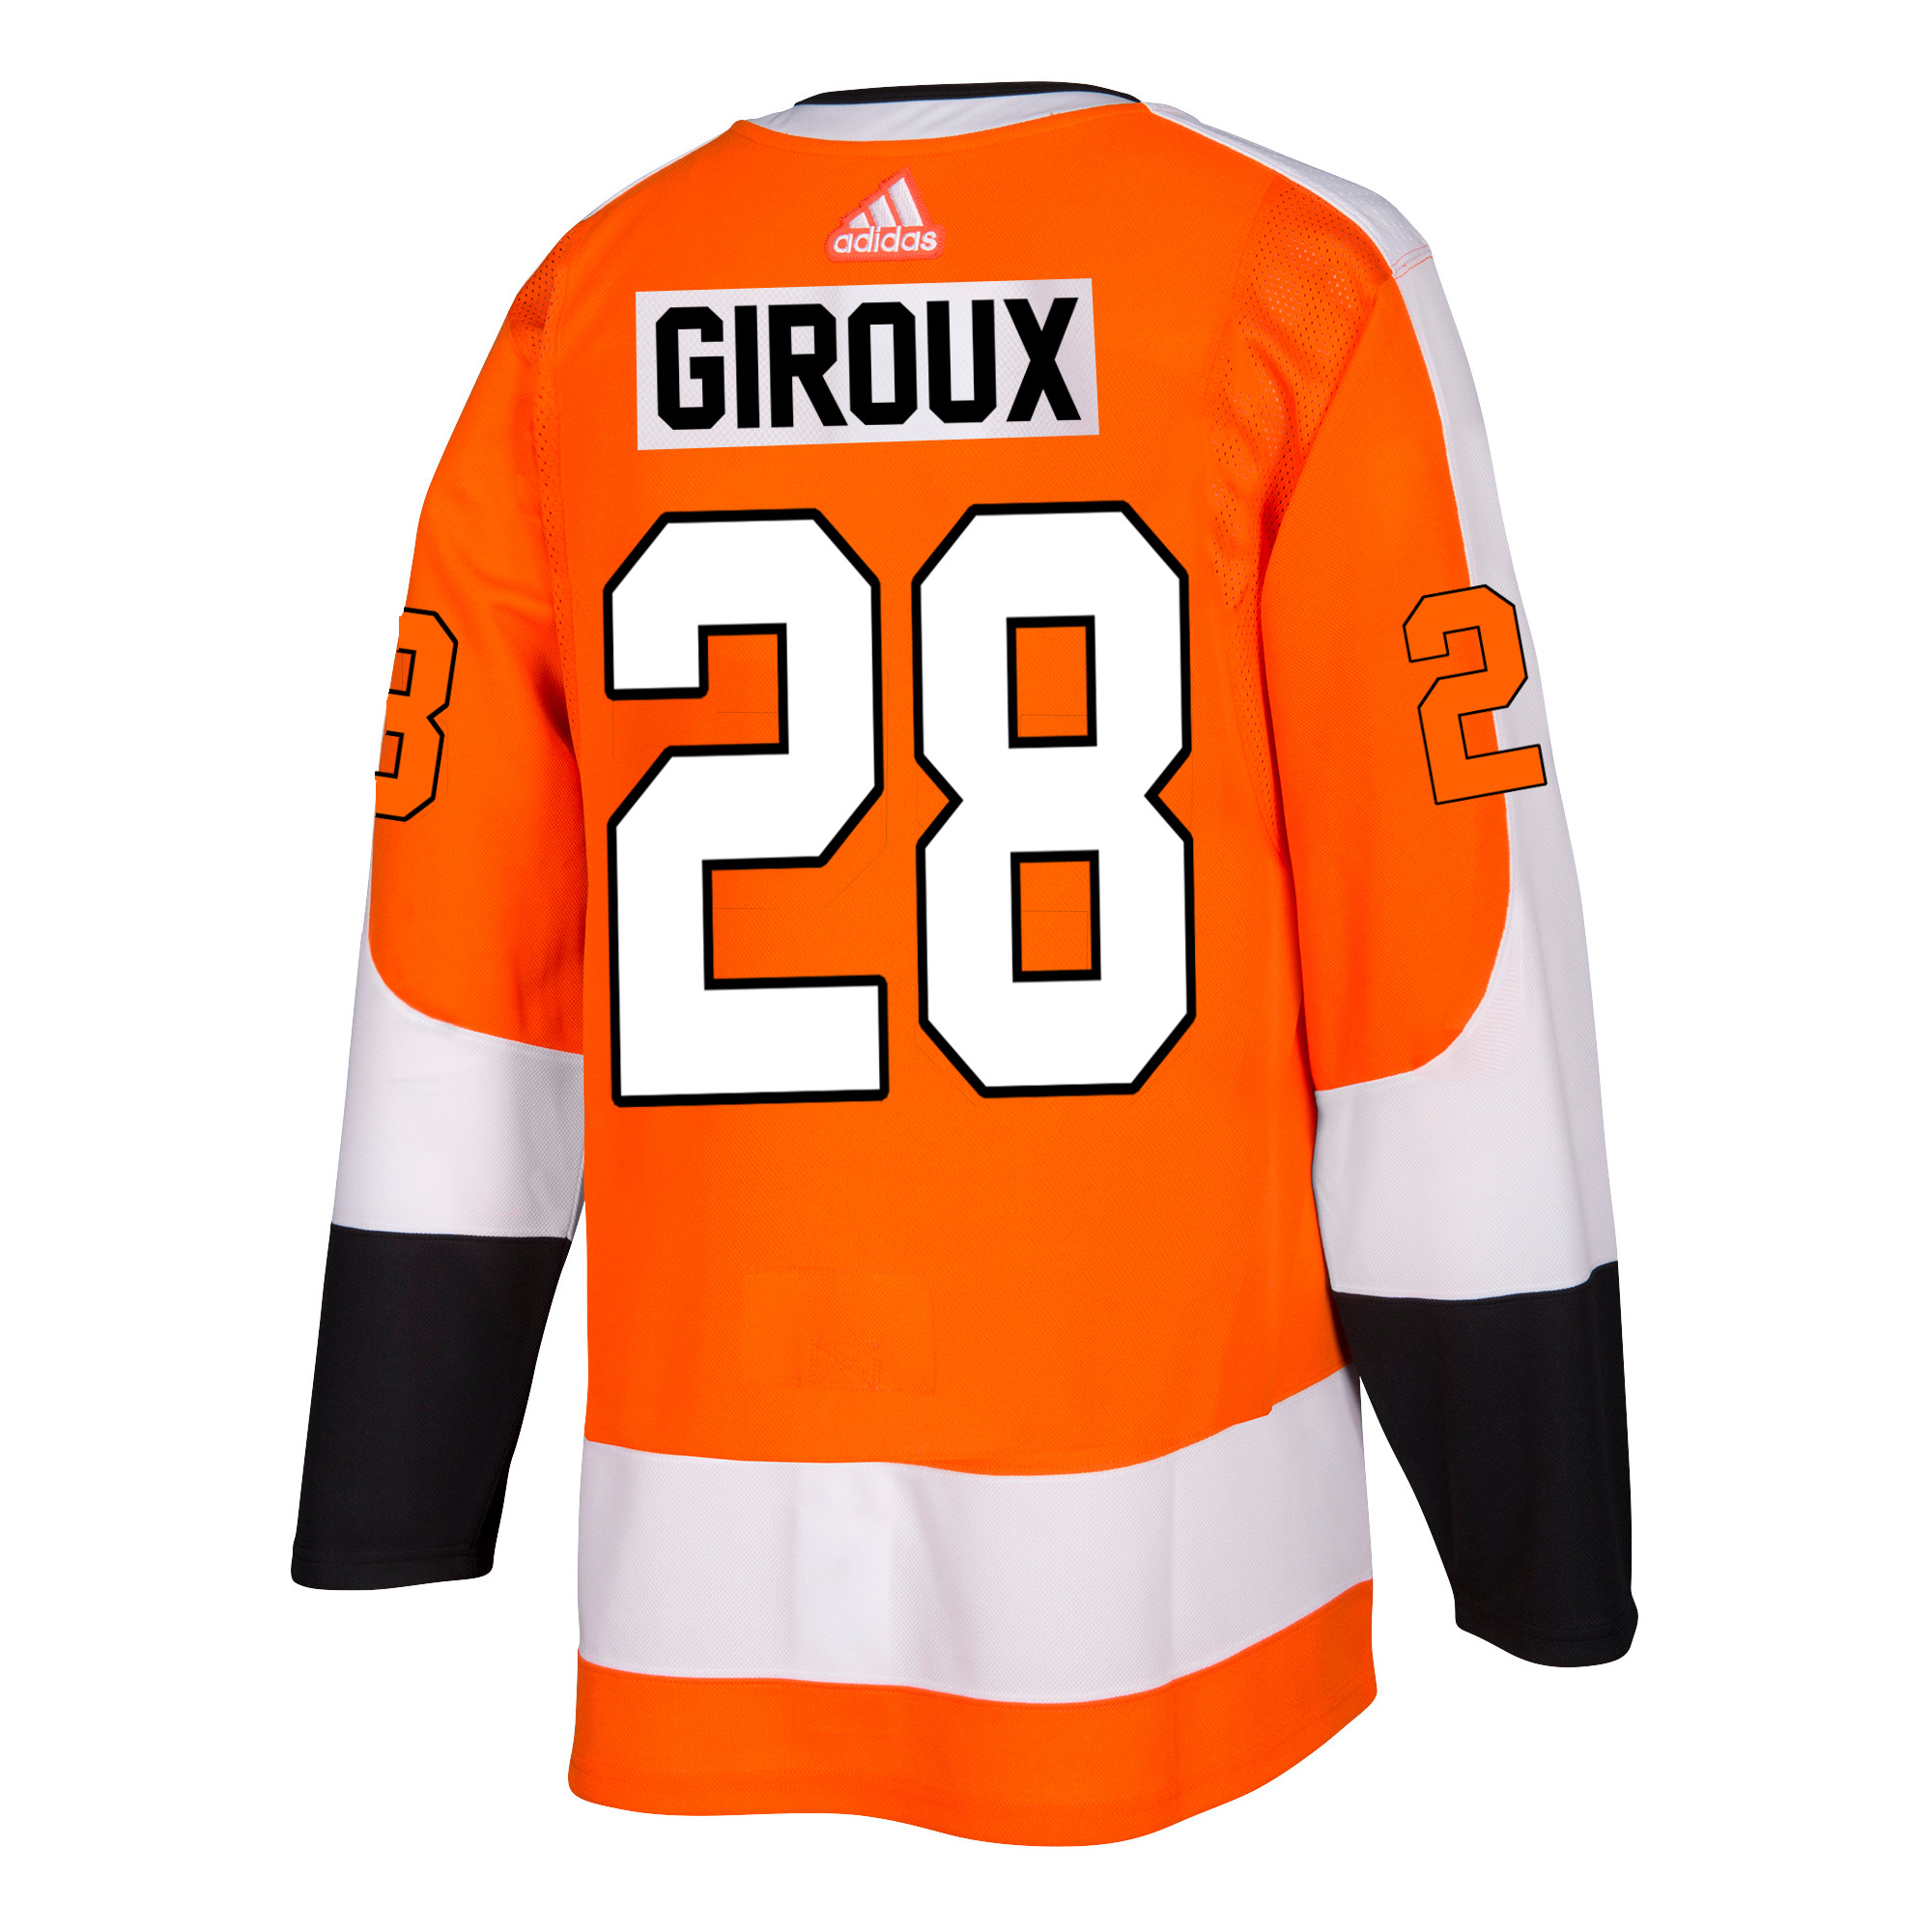 Philadelphia Flyers Men s ADIZERO Home Orange Giroux Jersey by Adidas 6b1c642c1